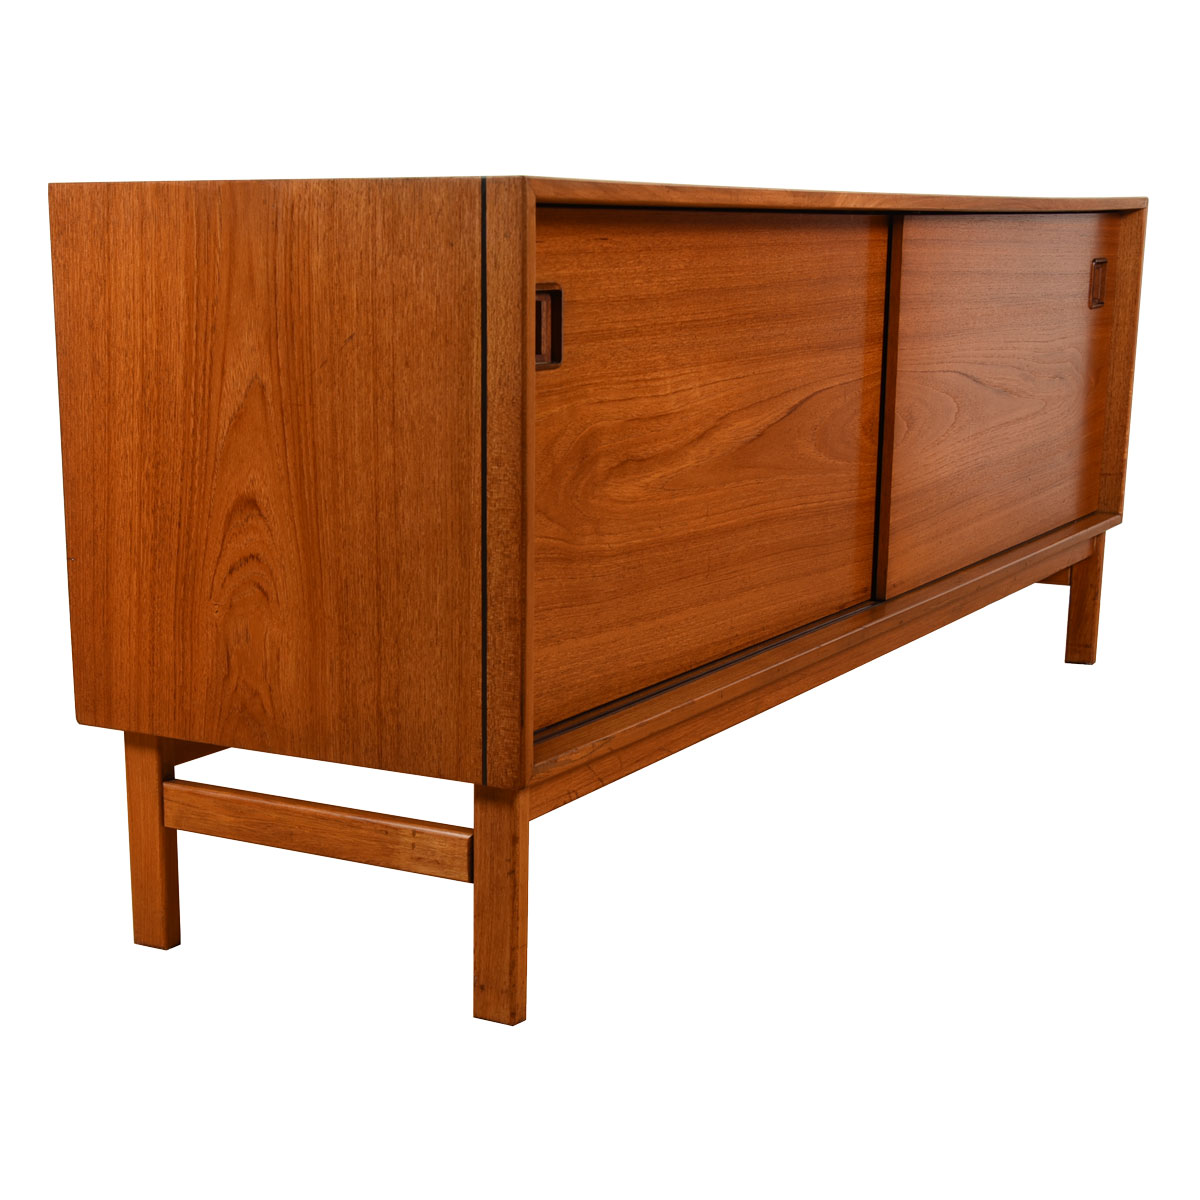 Vintage Teak Low Sliding Door Cabinet / Sideboard